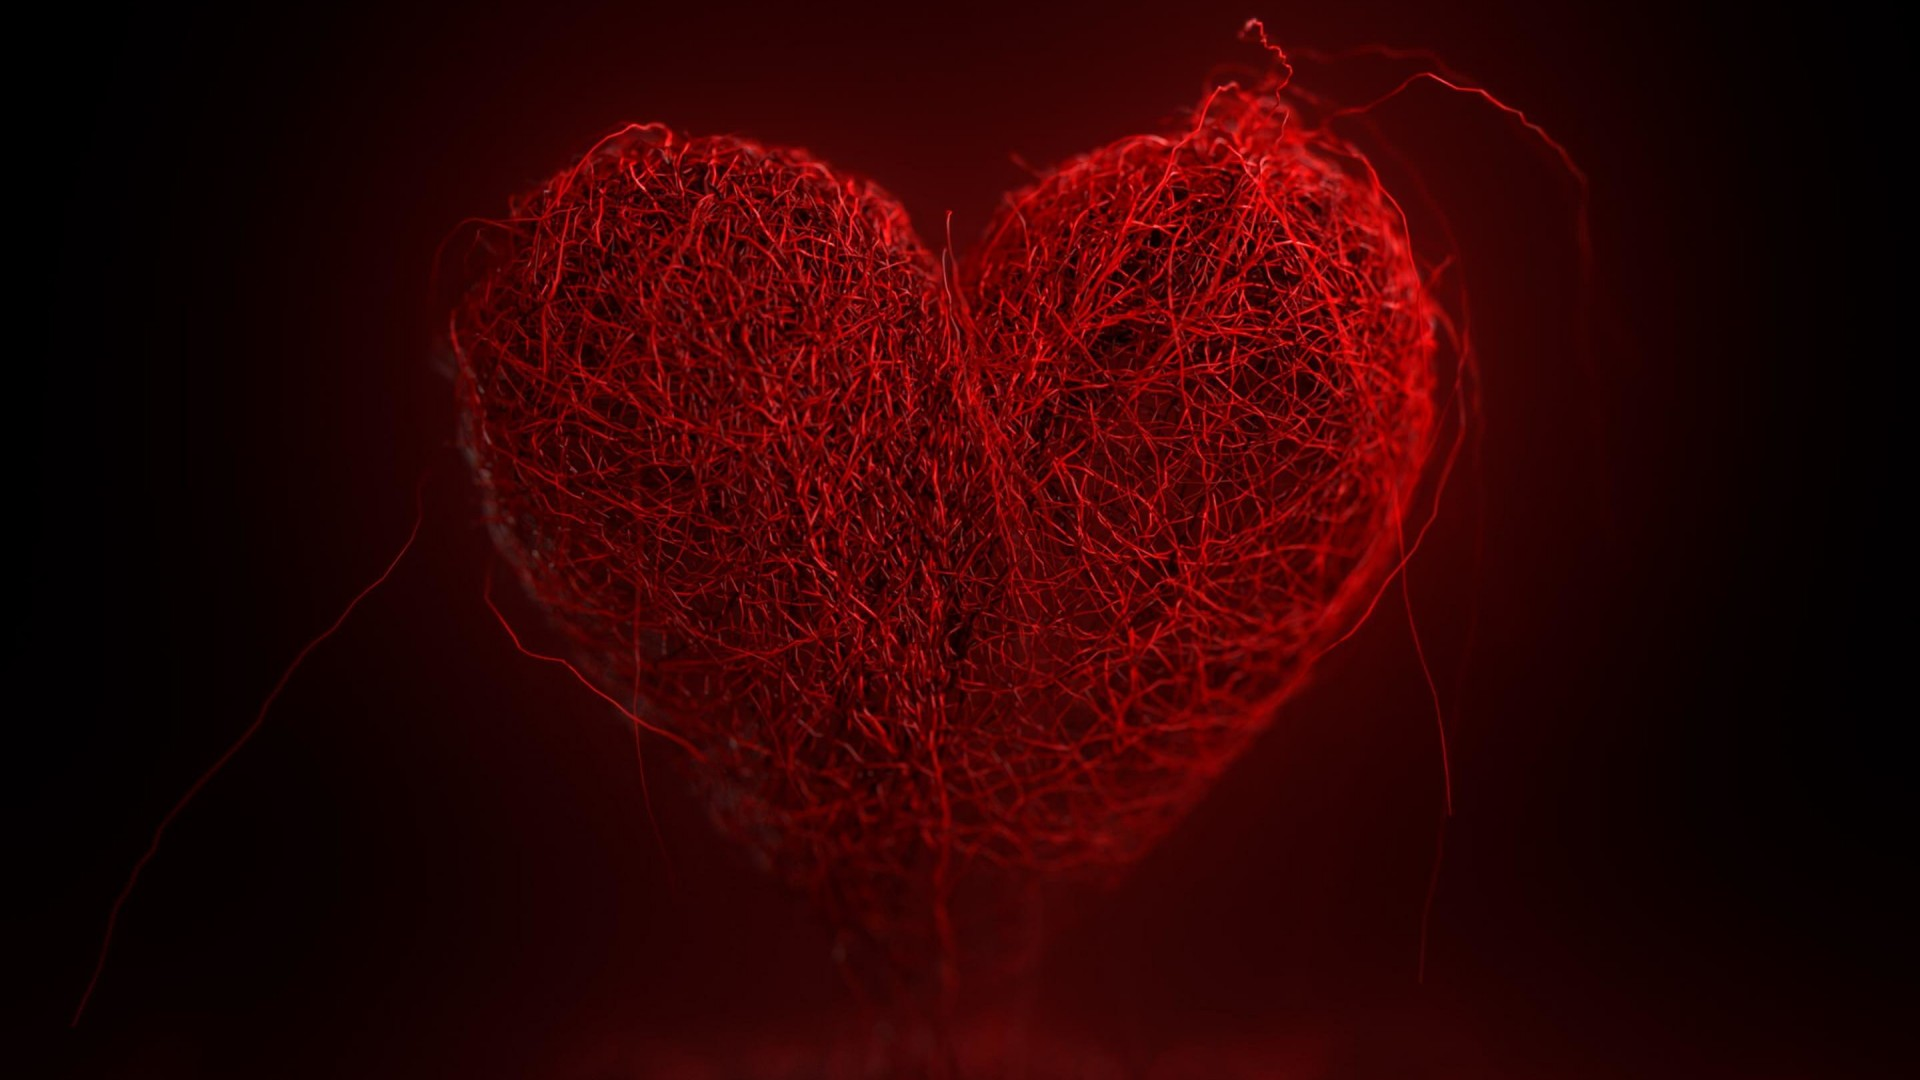 3D String Art Heart Wallpaper for Desktop 1920x1080